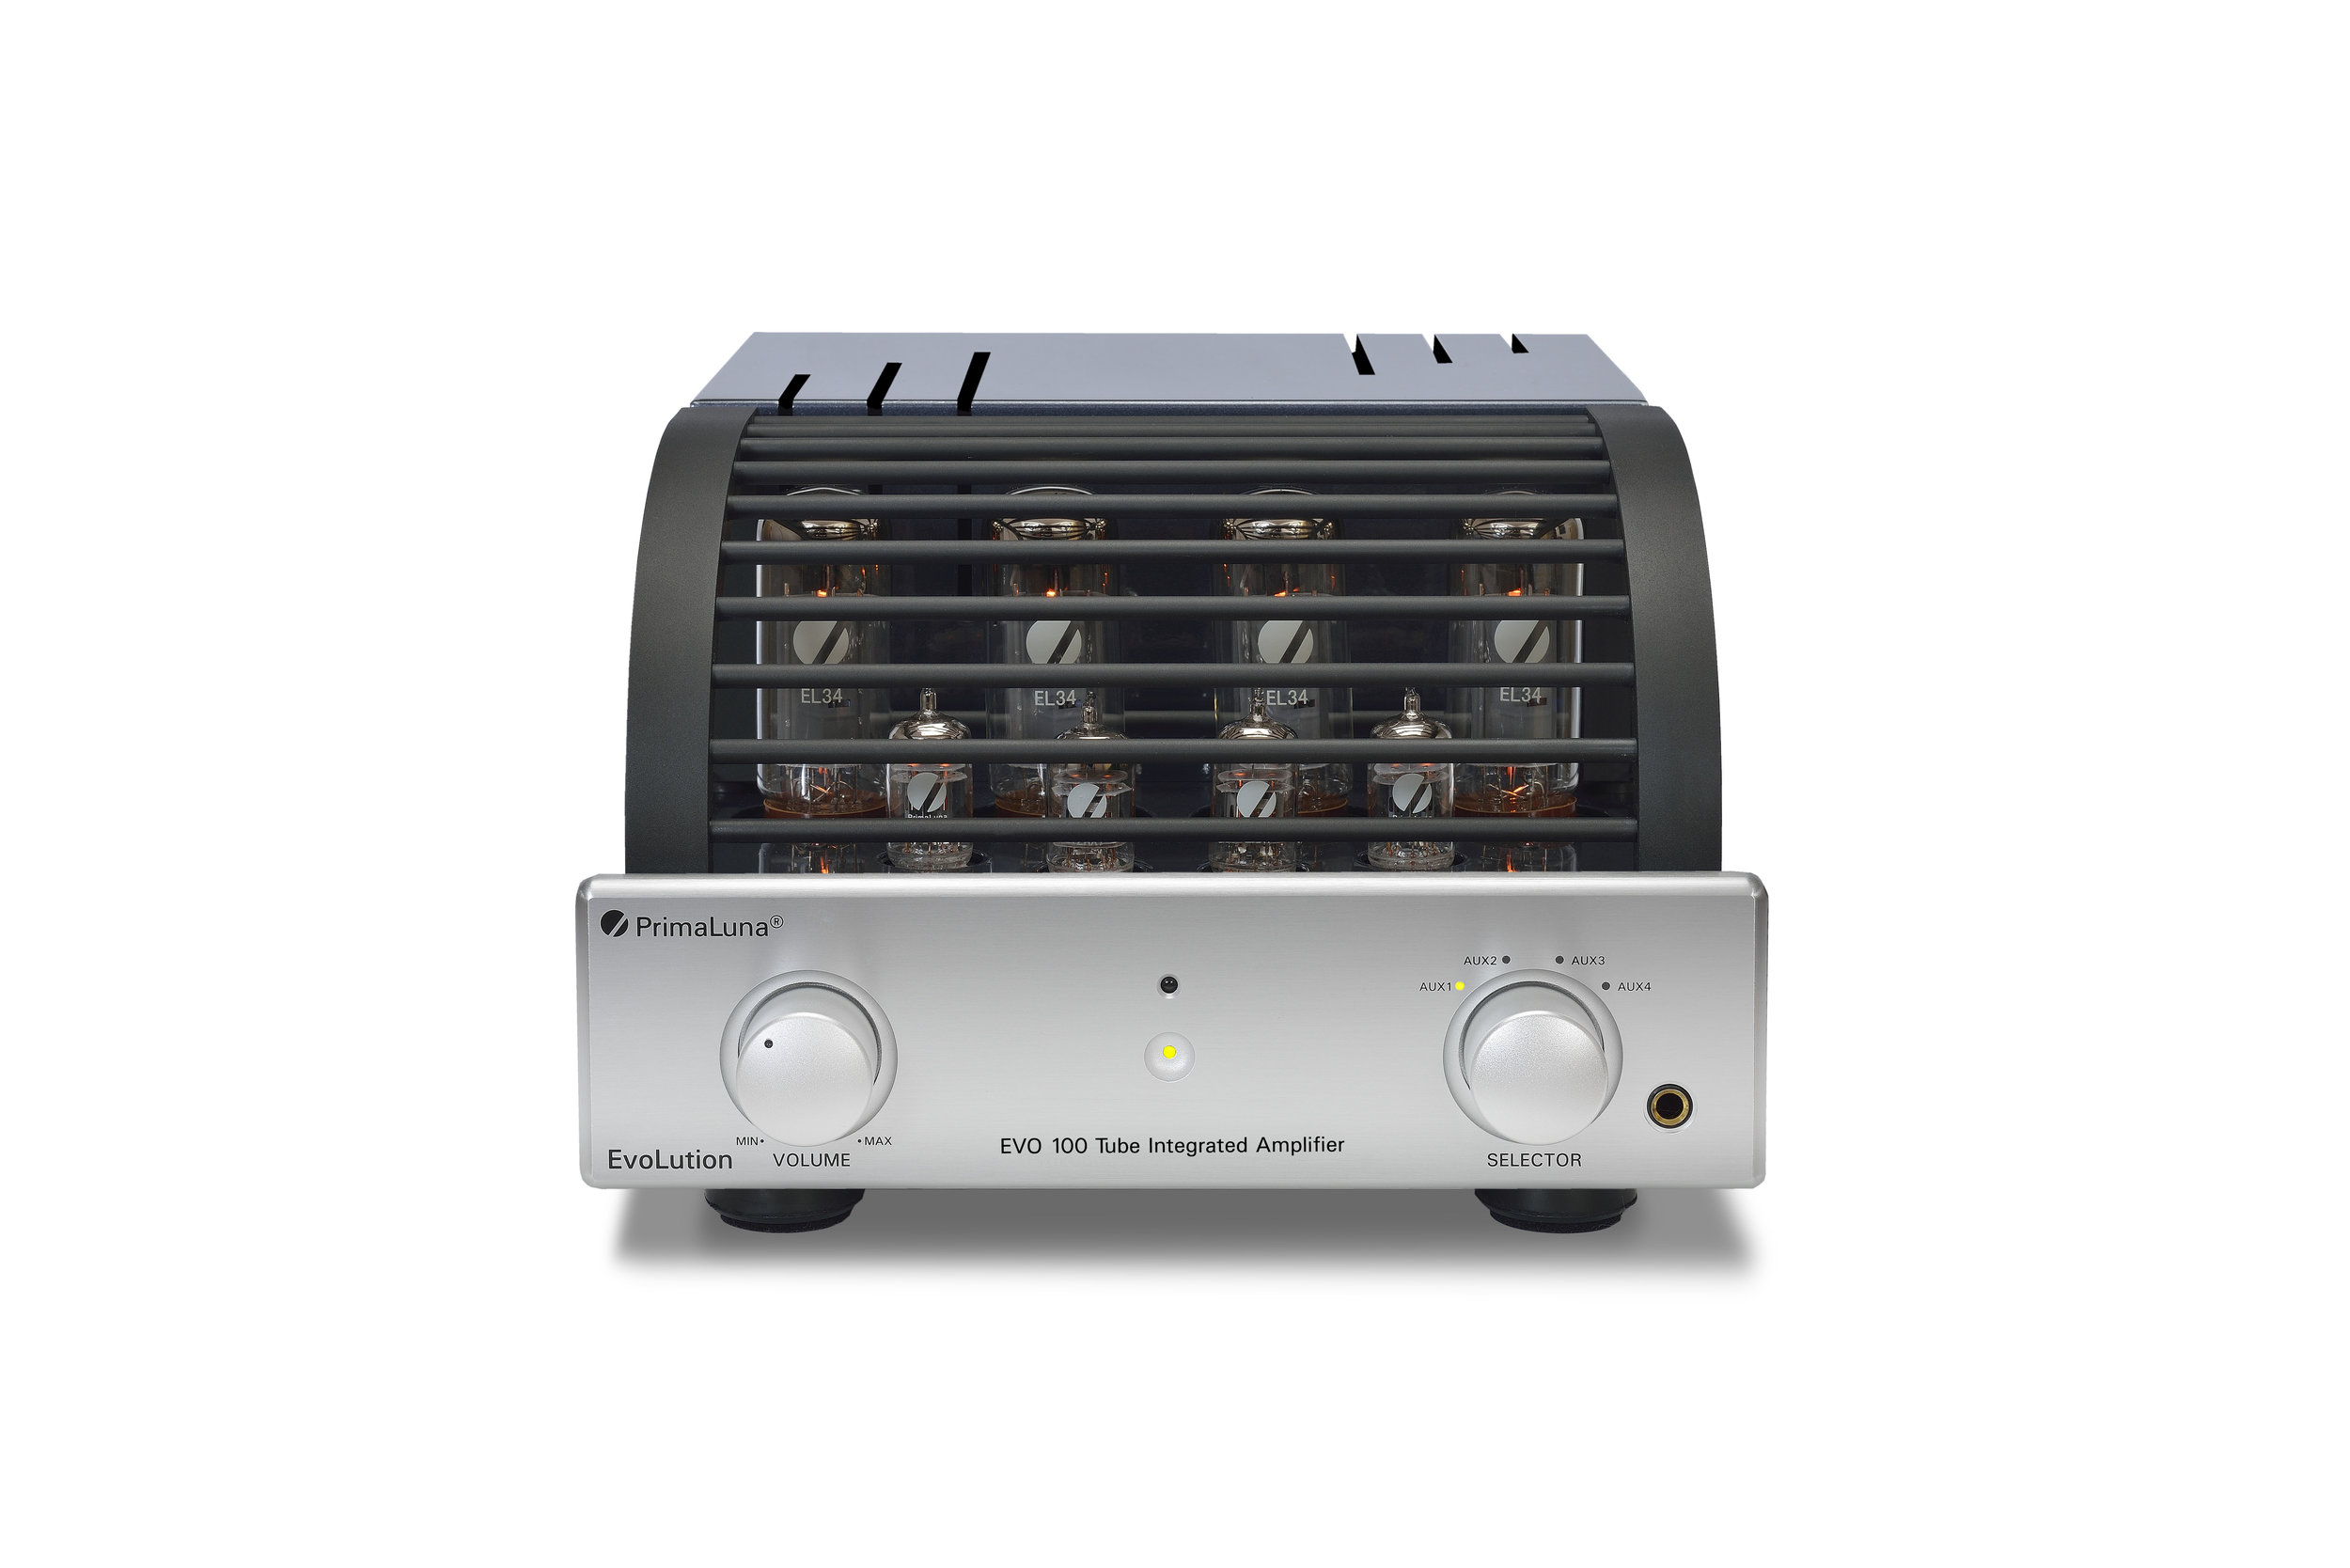 170b - PrimaLuna EVO 100 Tube Integrated Amplifier - silver - front - white background.jpg